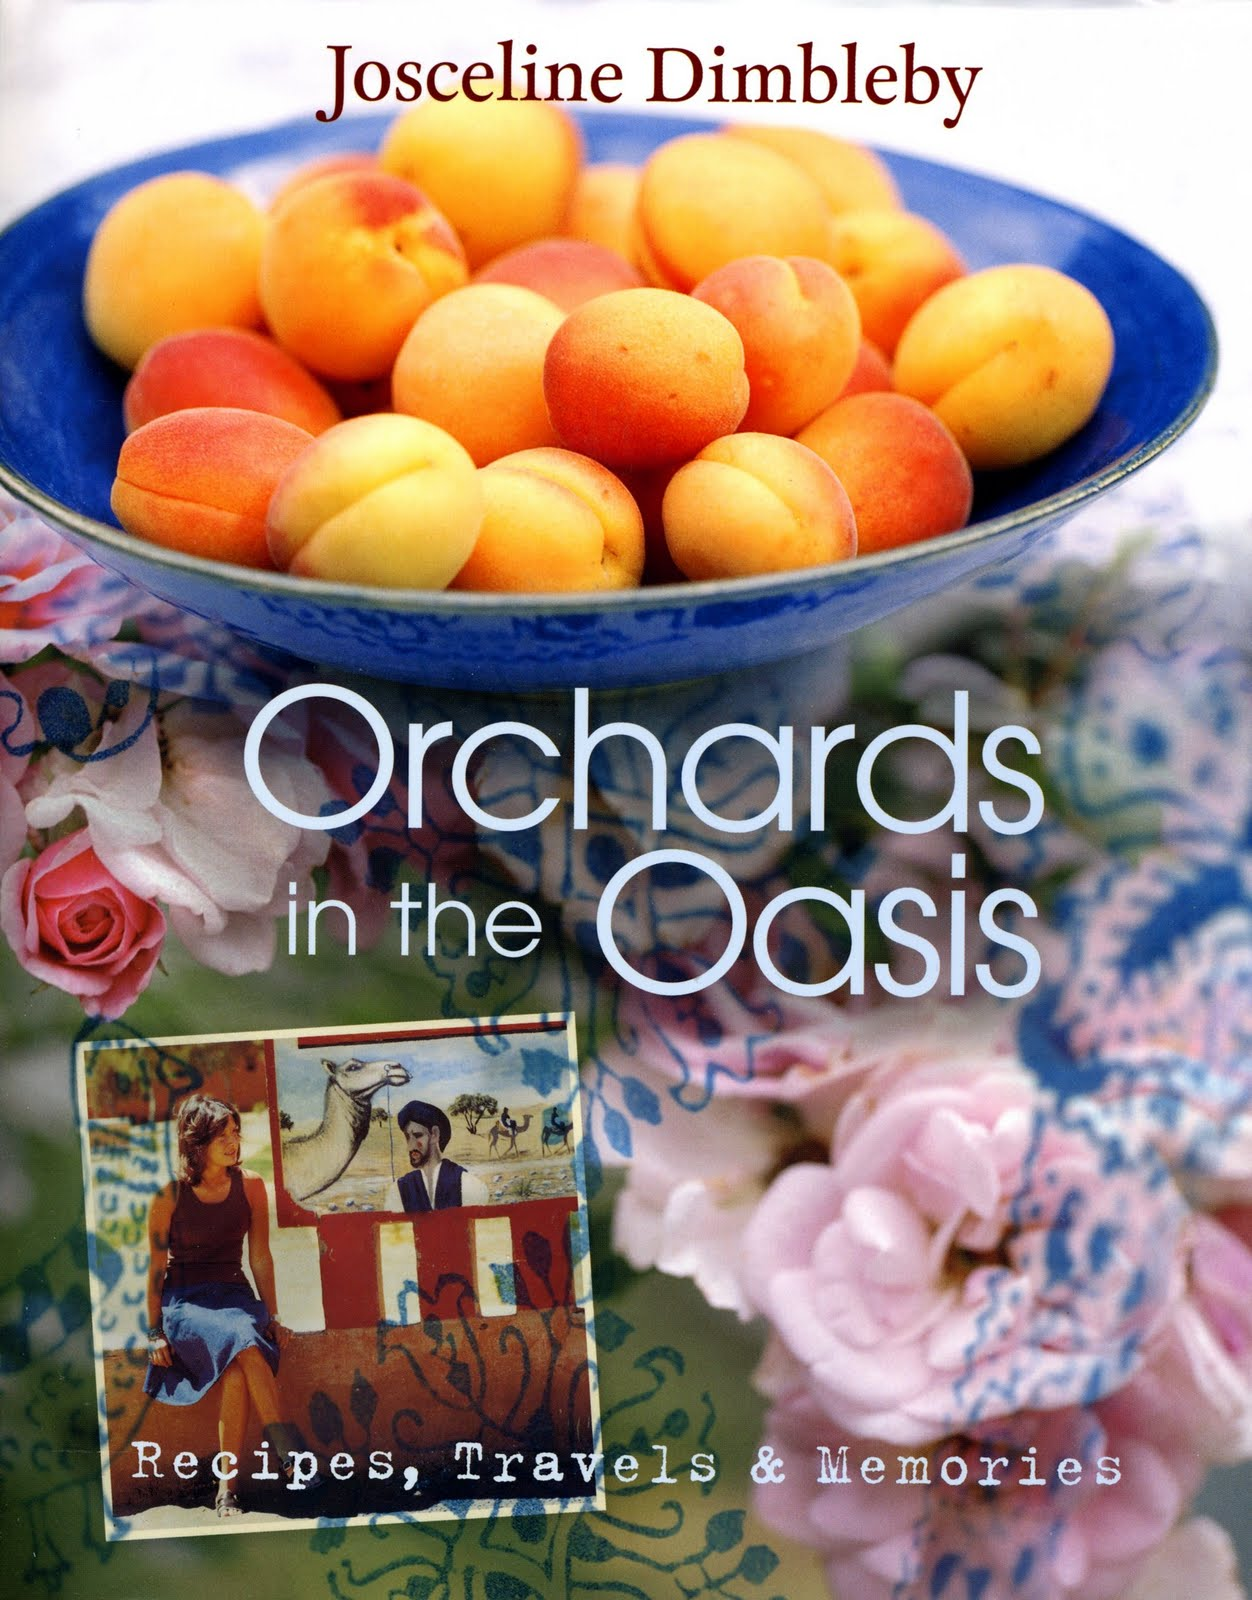 Orchards in the Oasis by Josceline Dimbleby